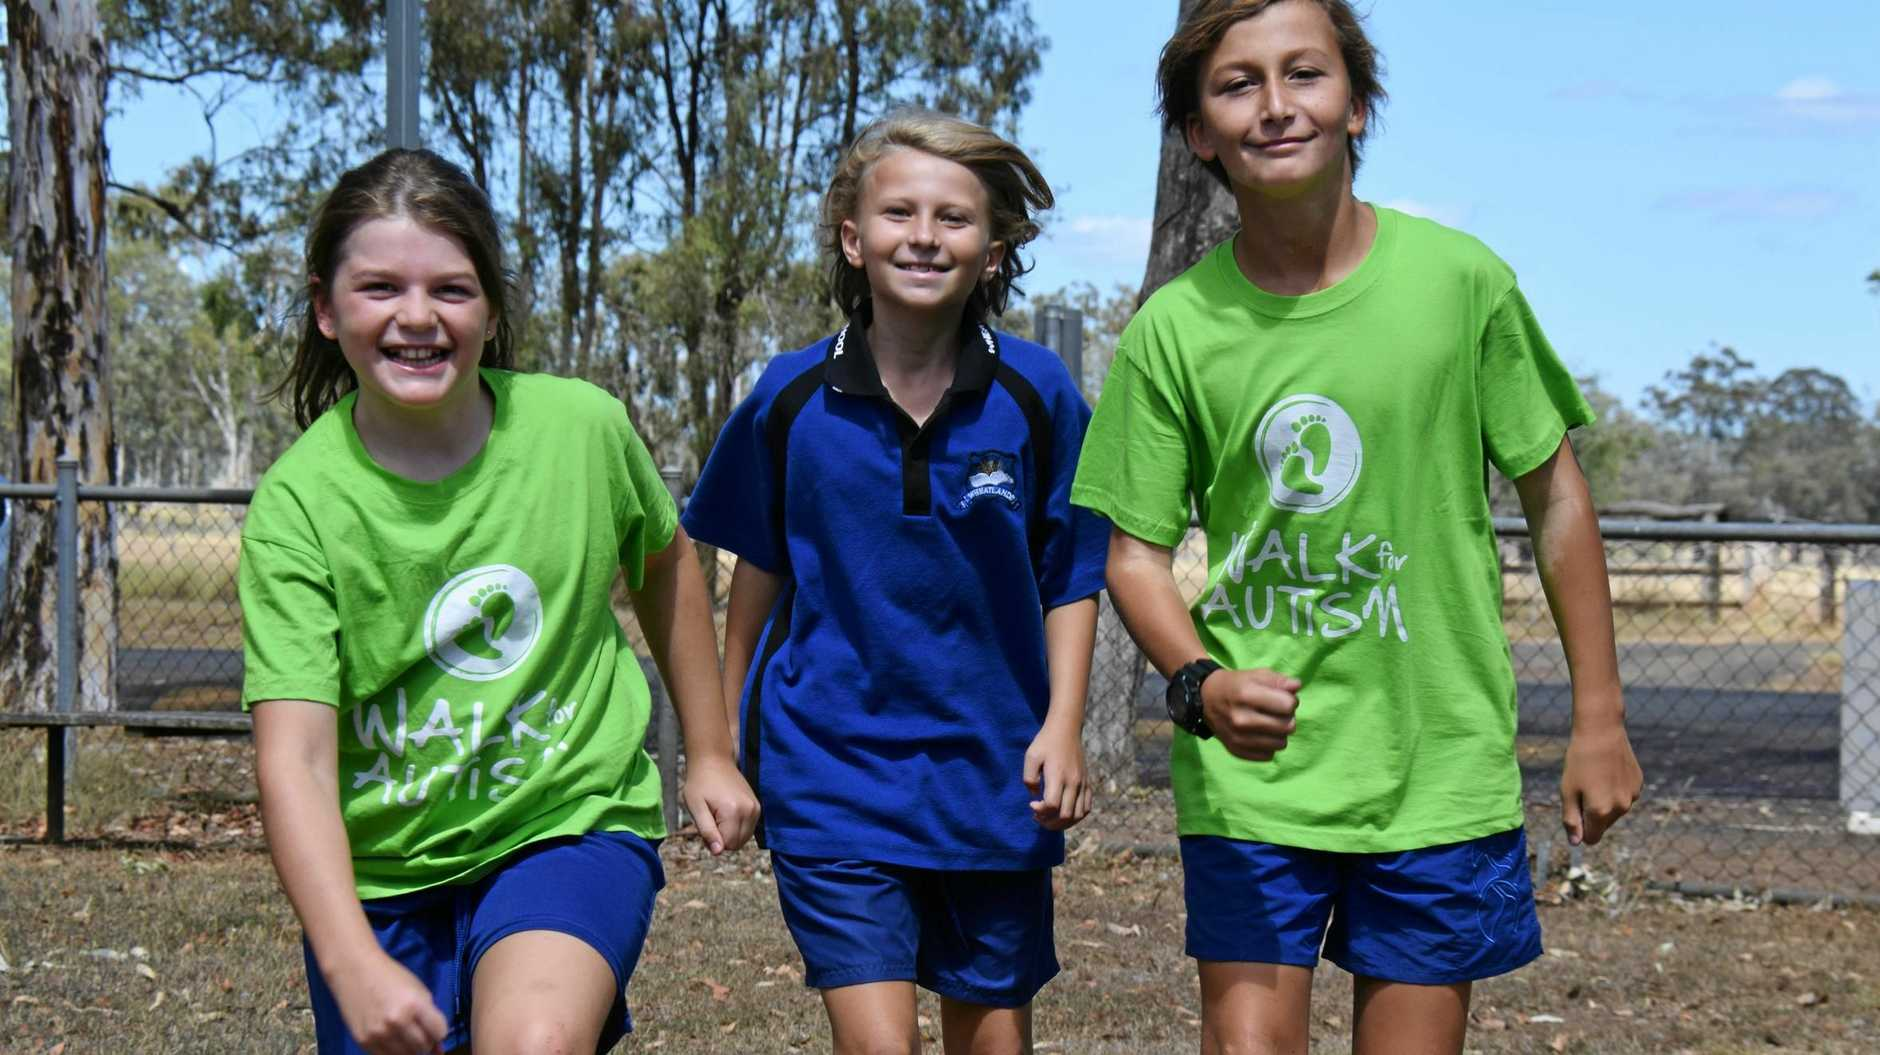 STRIDING OUT: Wheatlands State School students Olivia Fox, Cheyanne Lorne and Archer Hollands get in some training for the Walk for Autism fundraiser.